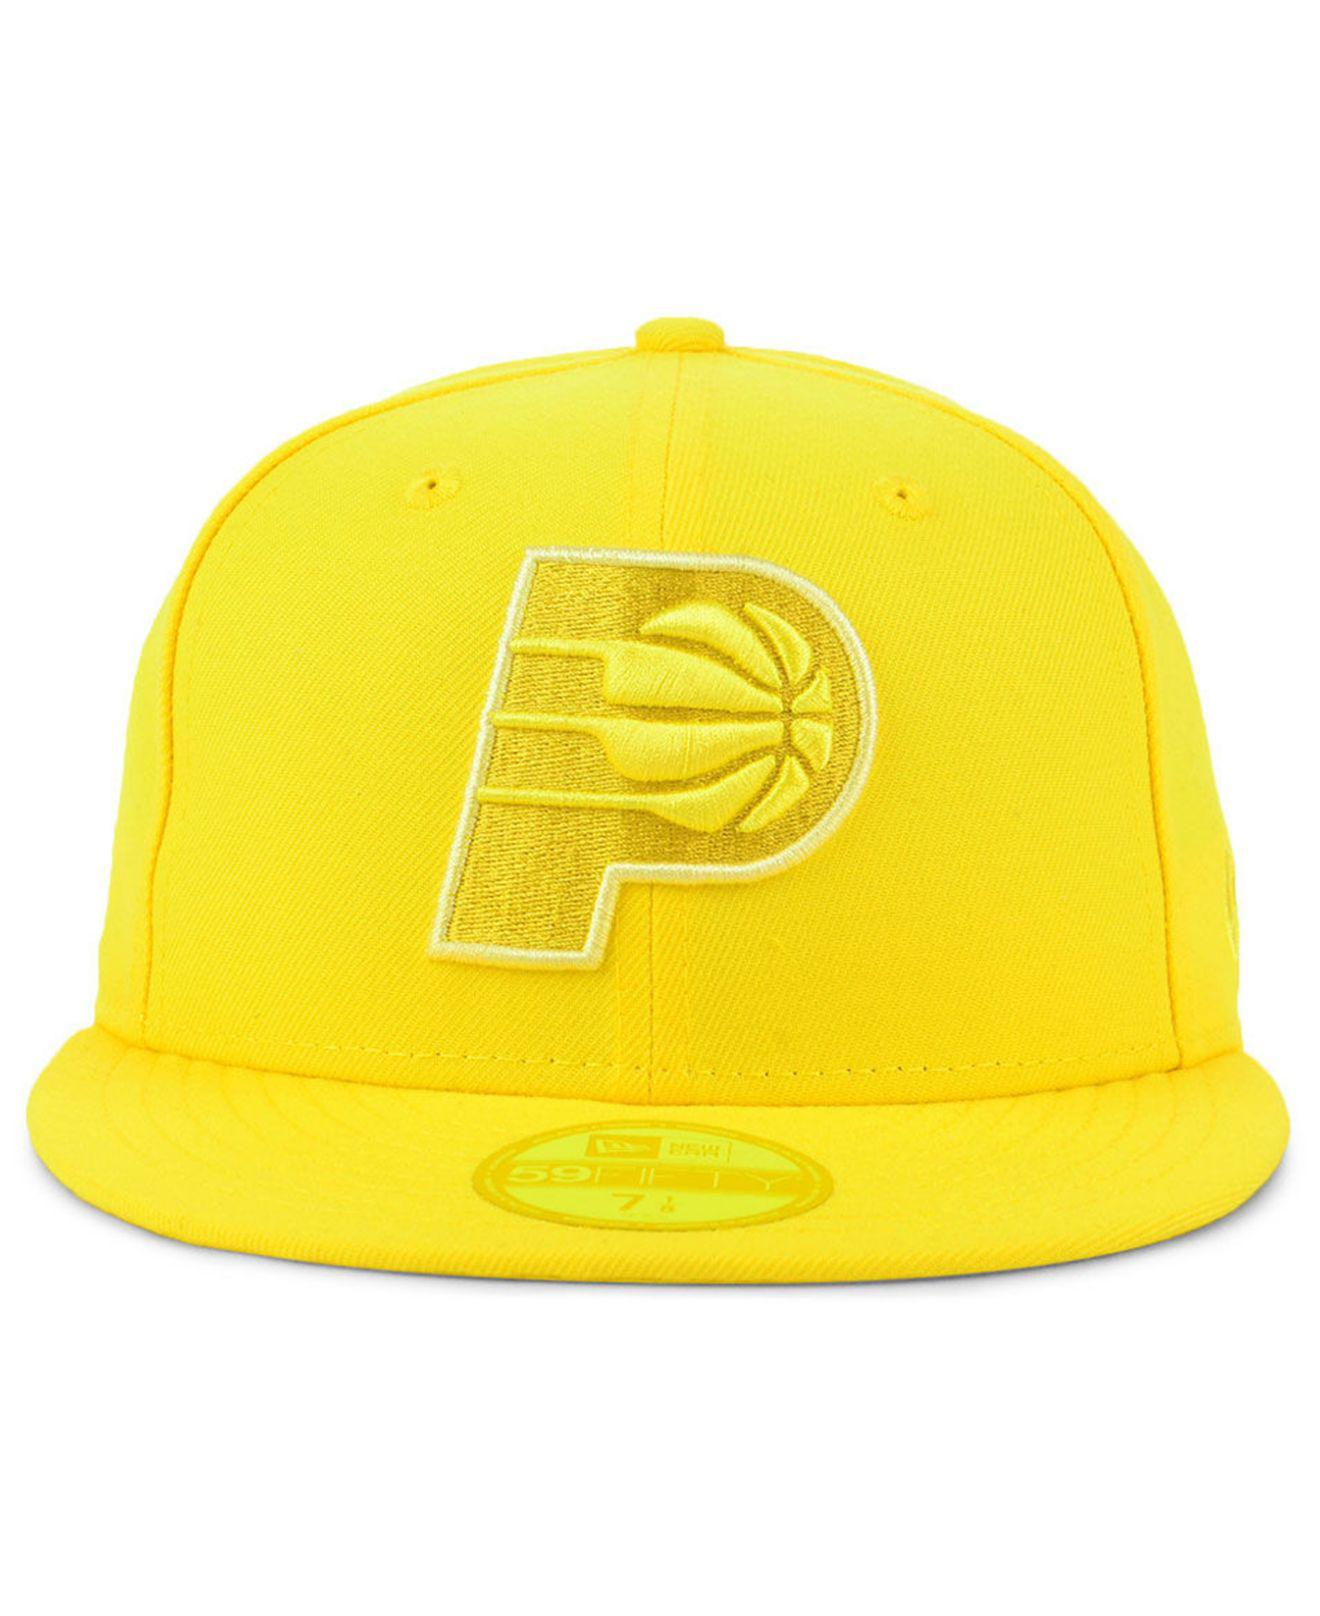 ... sweden lyst ktz indiana pacers color prism pack 59fifty fitted cap in  yellow for men ff03c dba4afb9ccd1